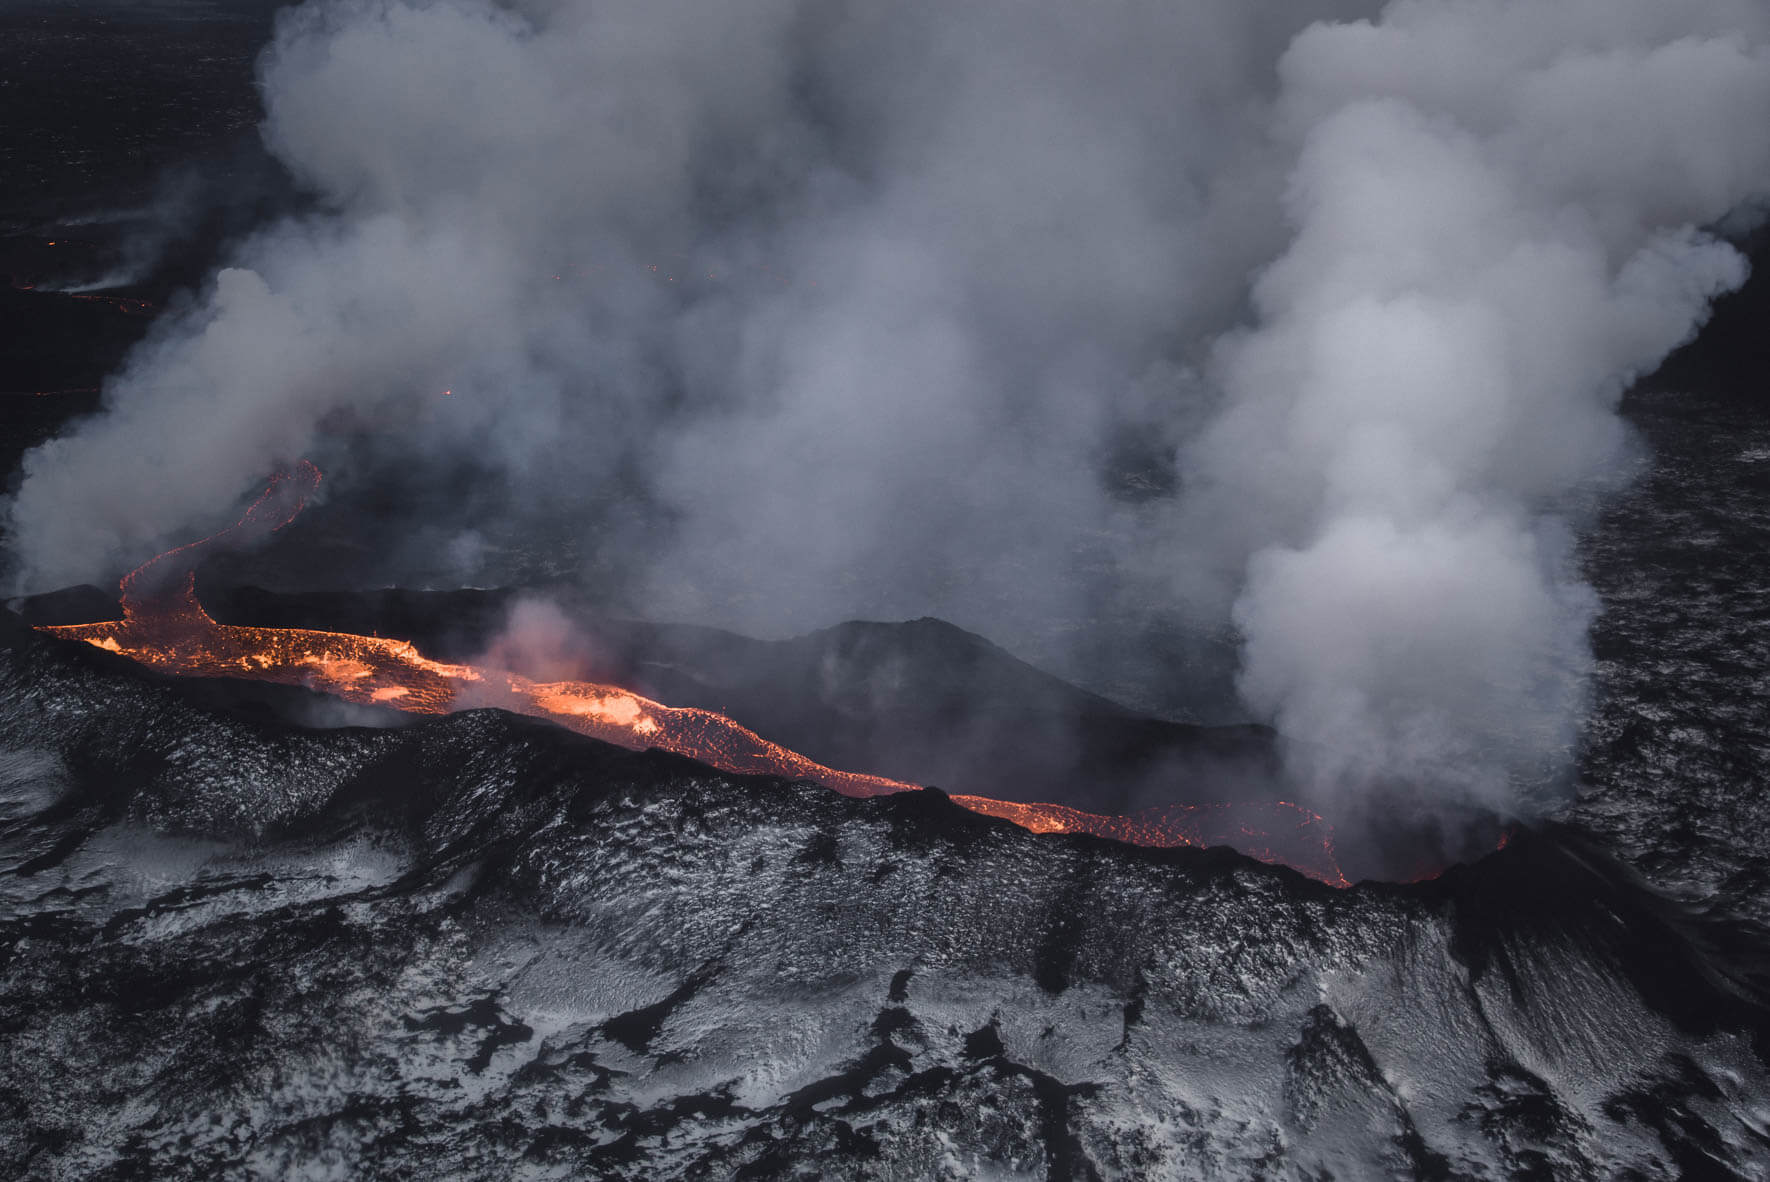 The Holuhraun lava field in Iceland in January 2015